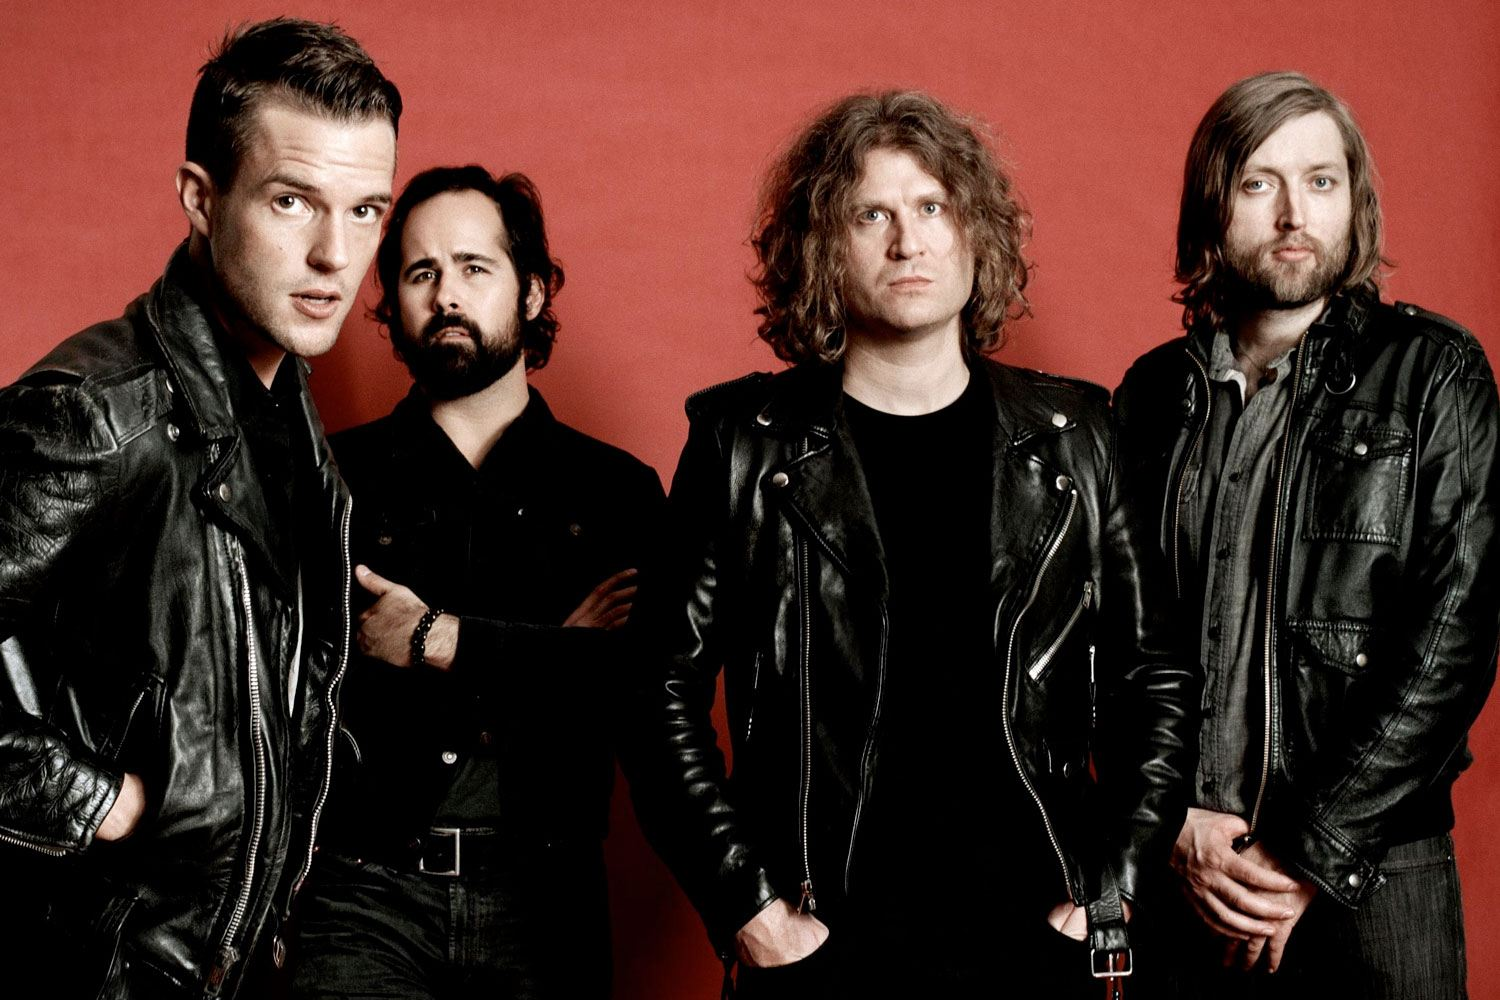 The Killers Tour 2022: What the Concerts Will Look Like in 5 of The Biggest Venues